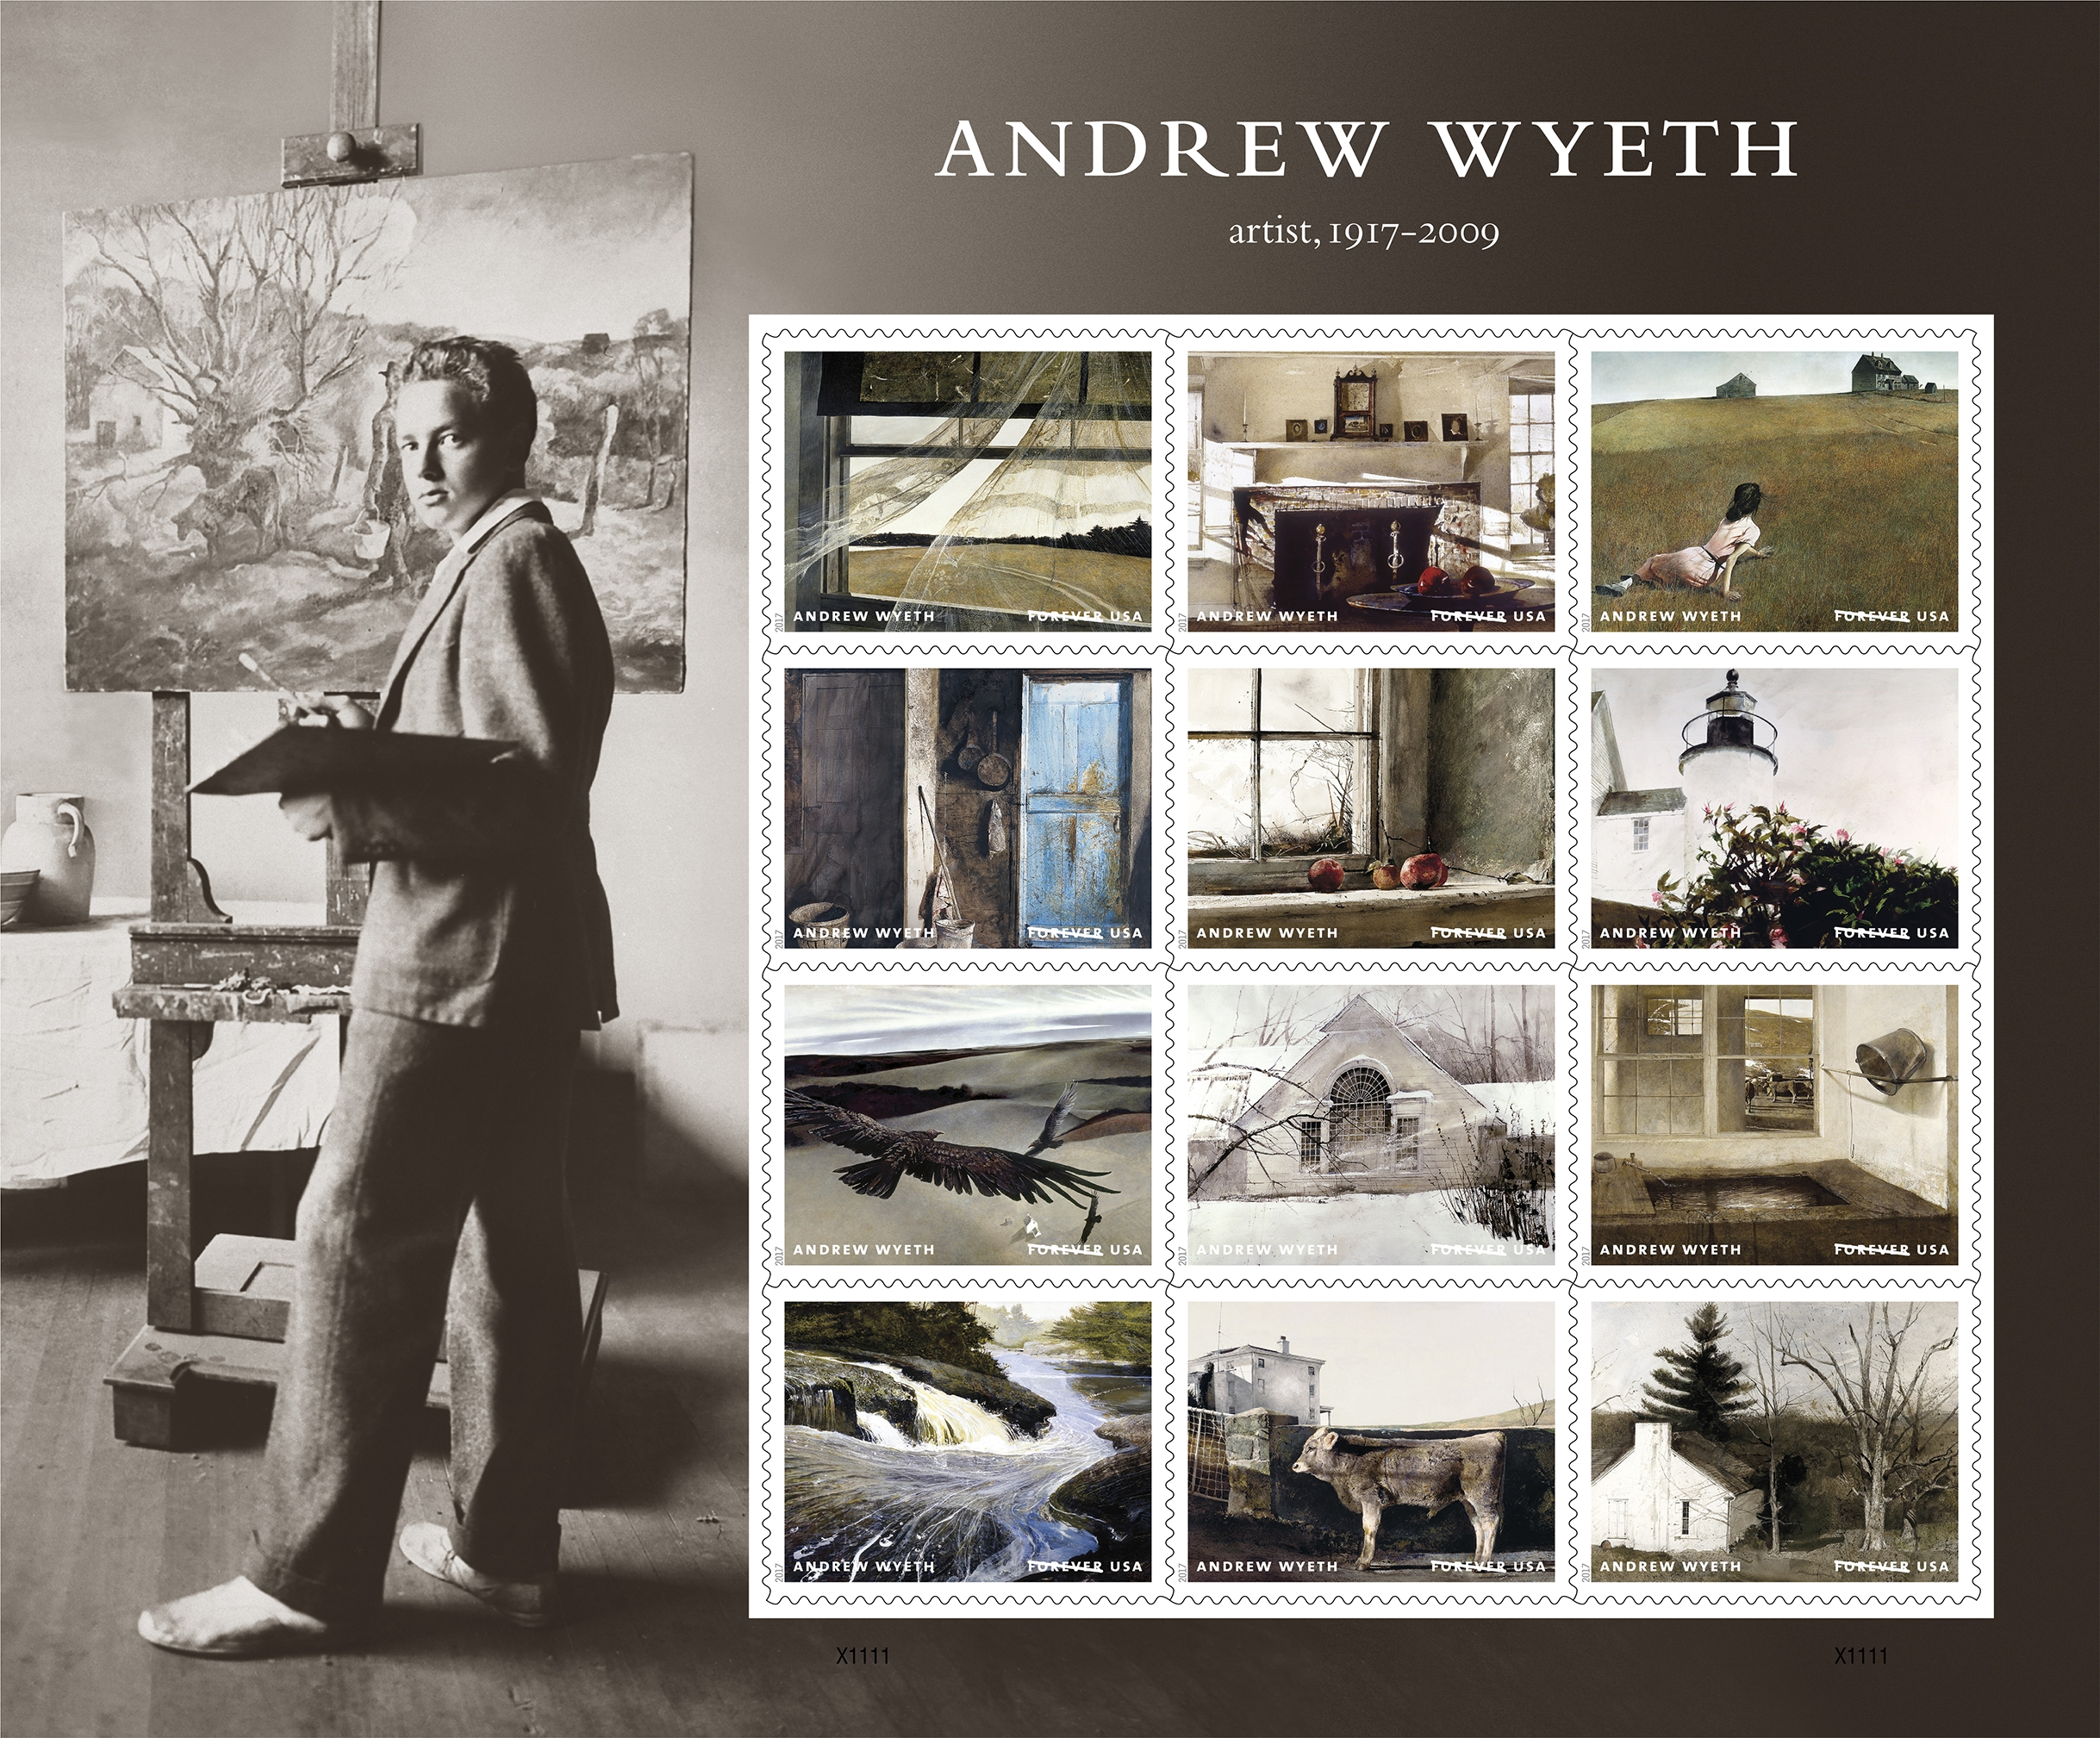 U.S. Postal Service Stamps Andrew Wyeth's Legacy as an American Icon